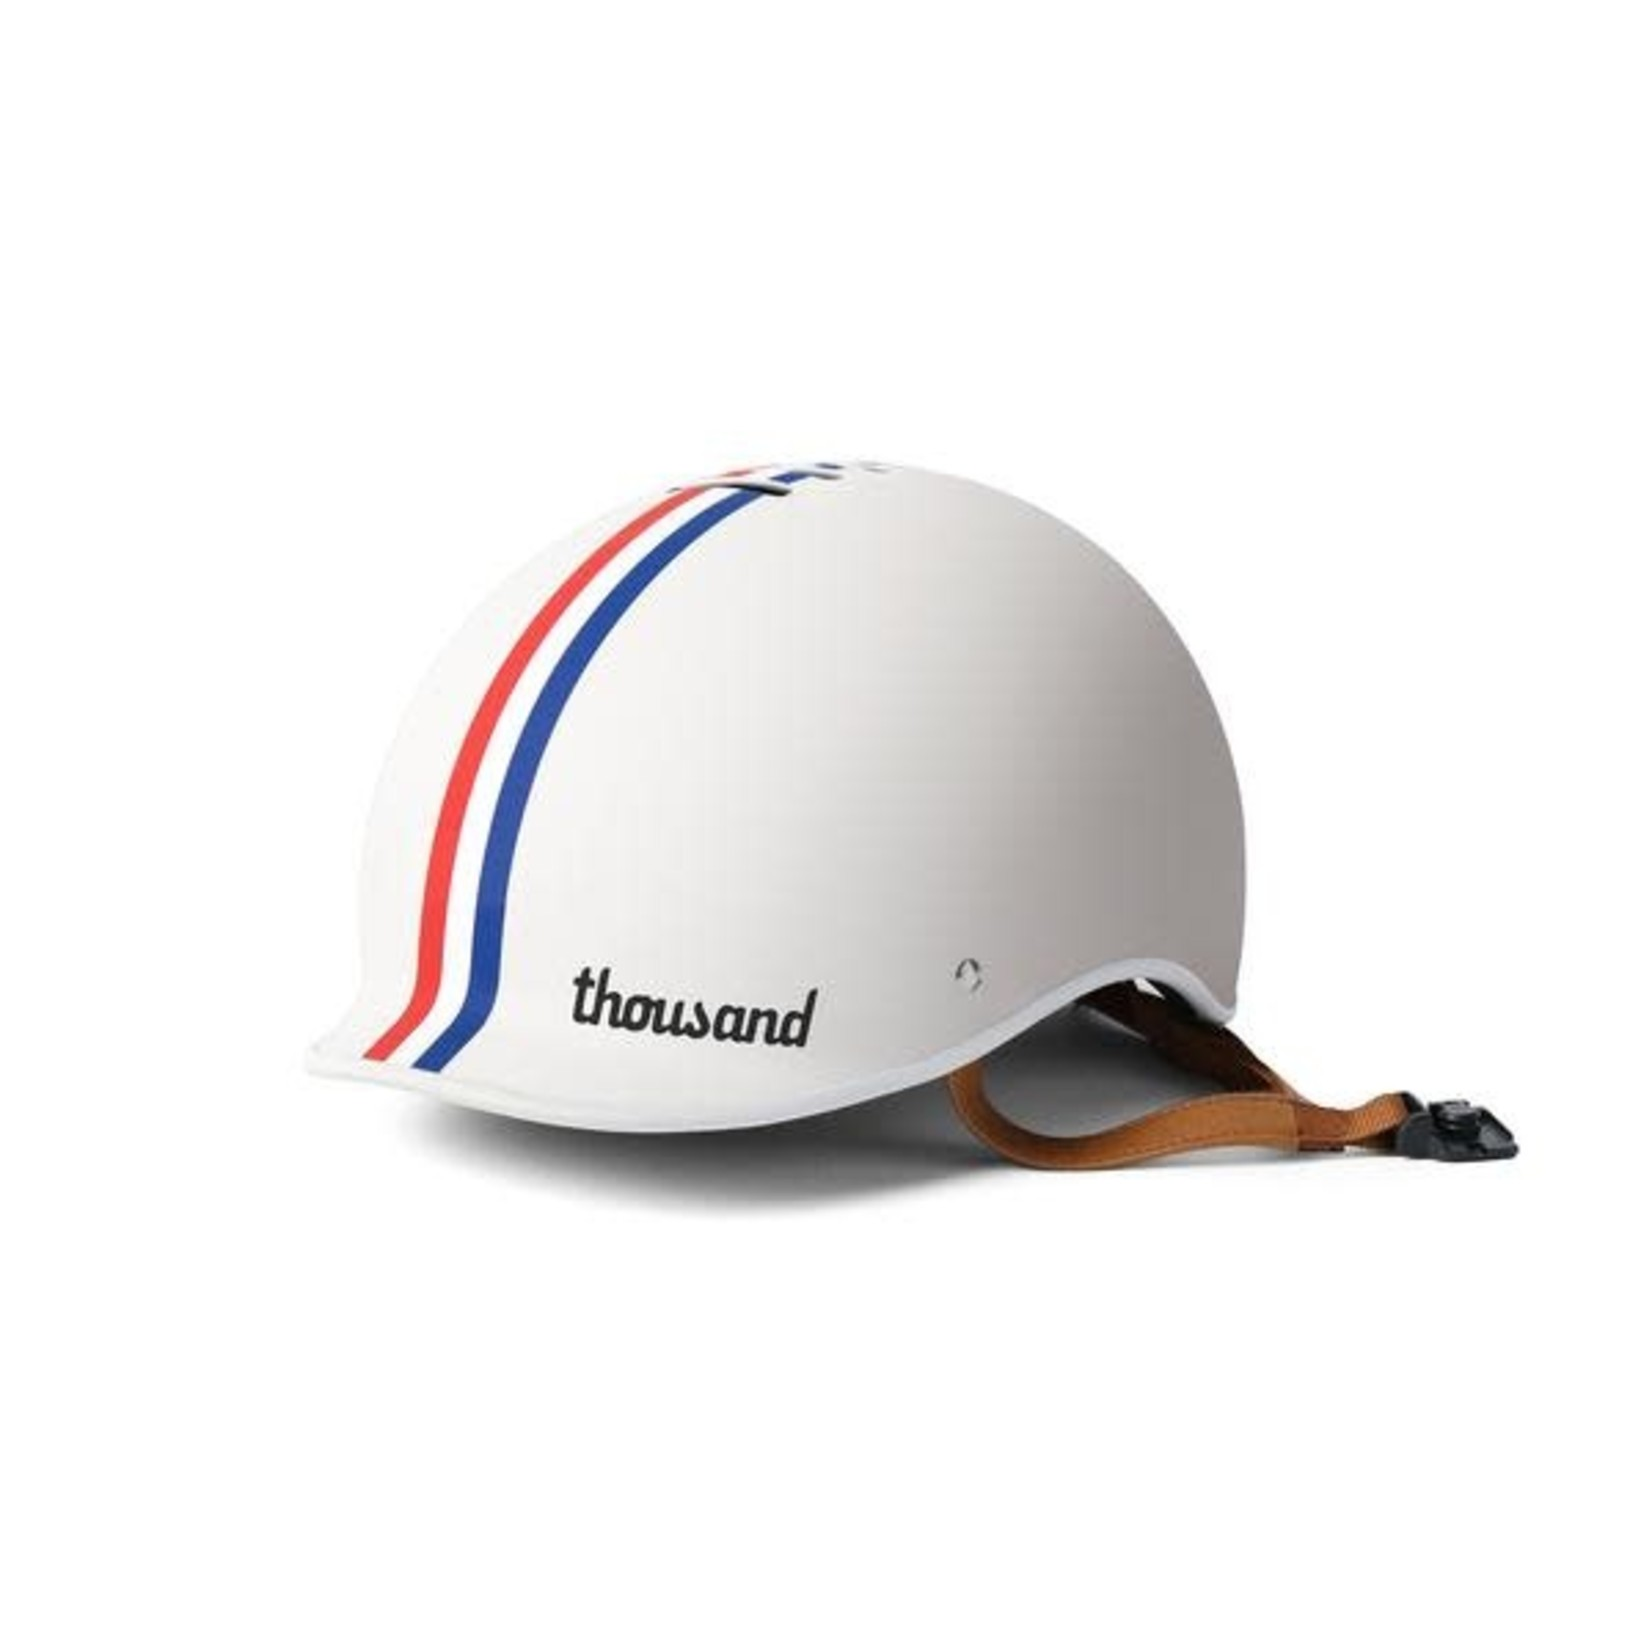 Thousand Thousand Heritage Collection Helmets